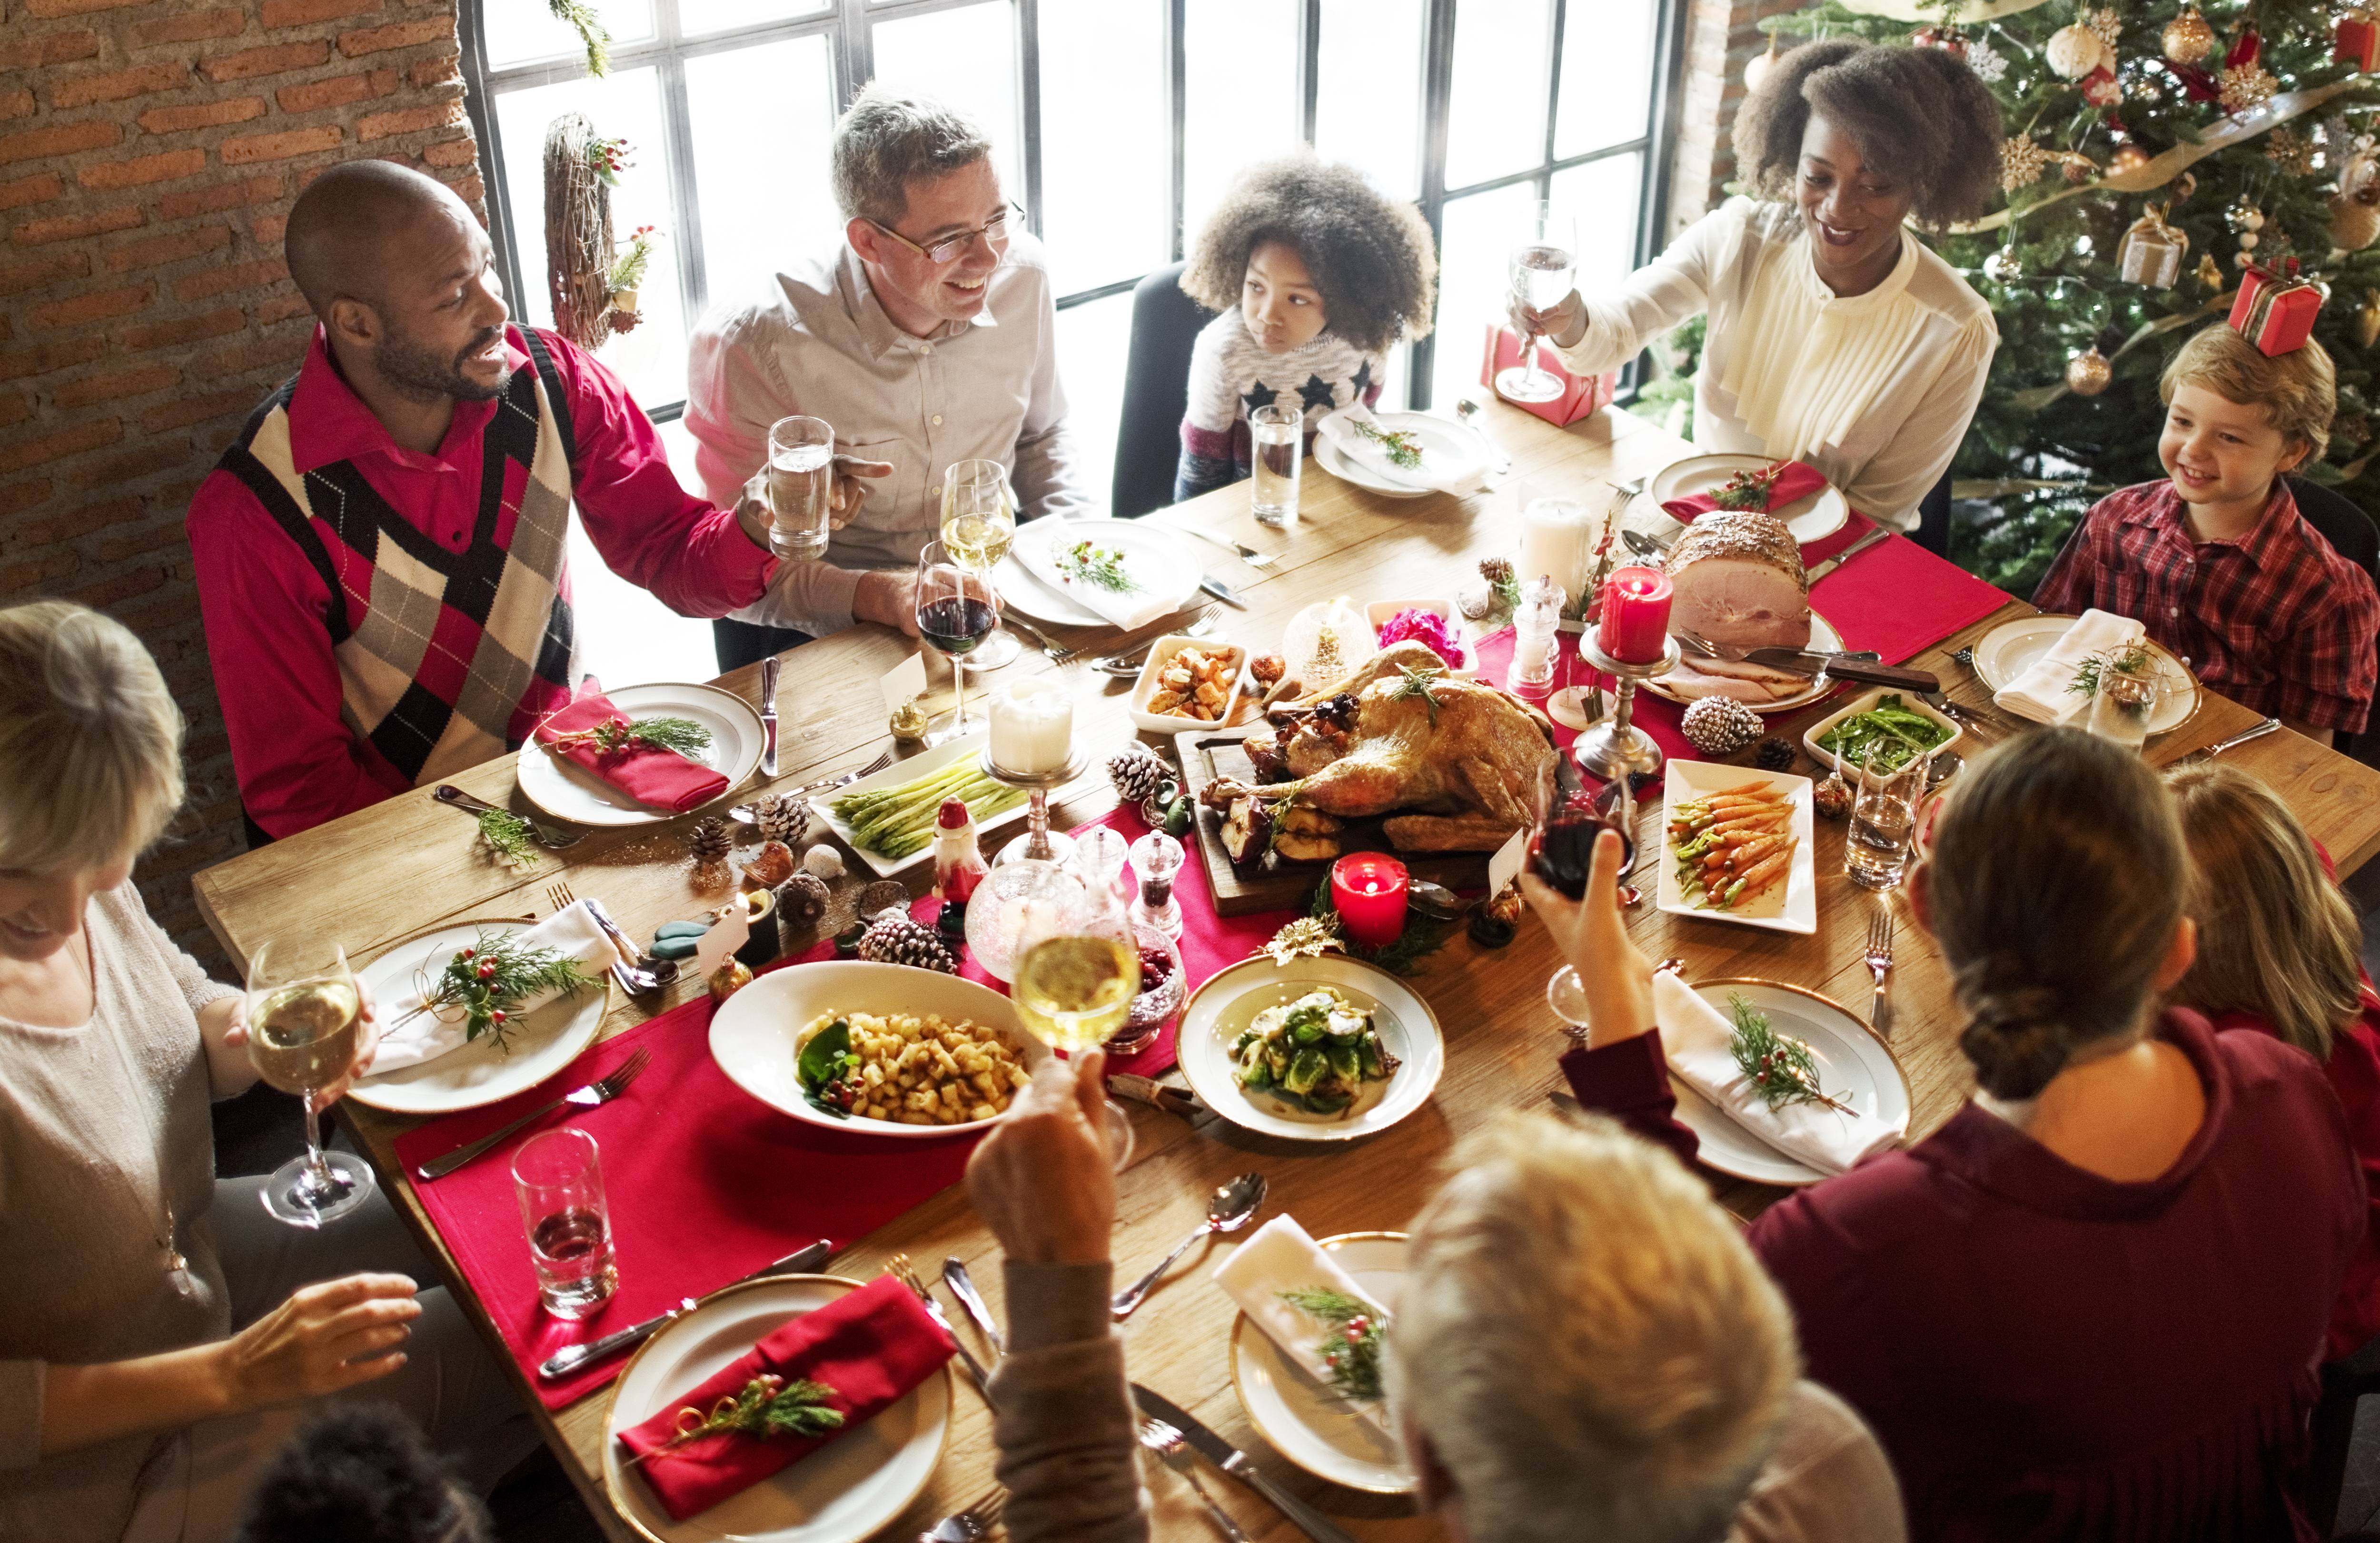 a festive holiday dinner table with family and friends